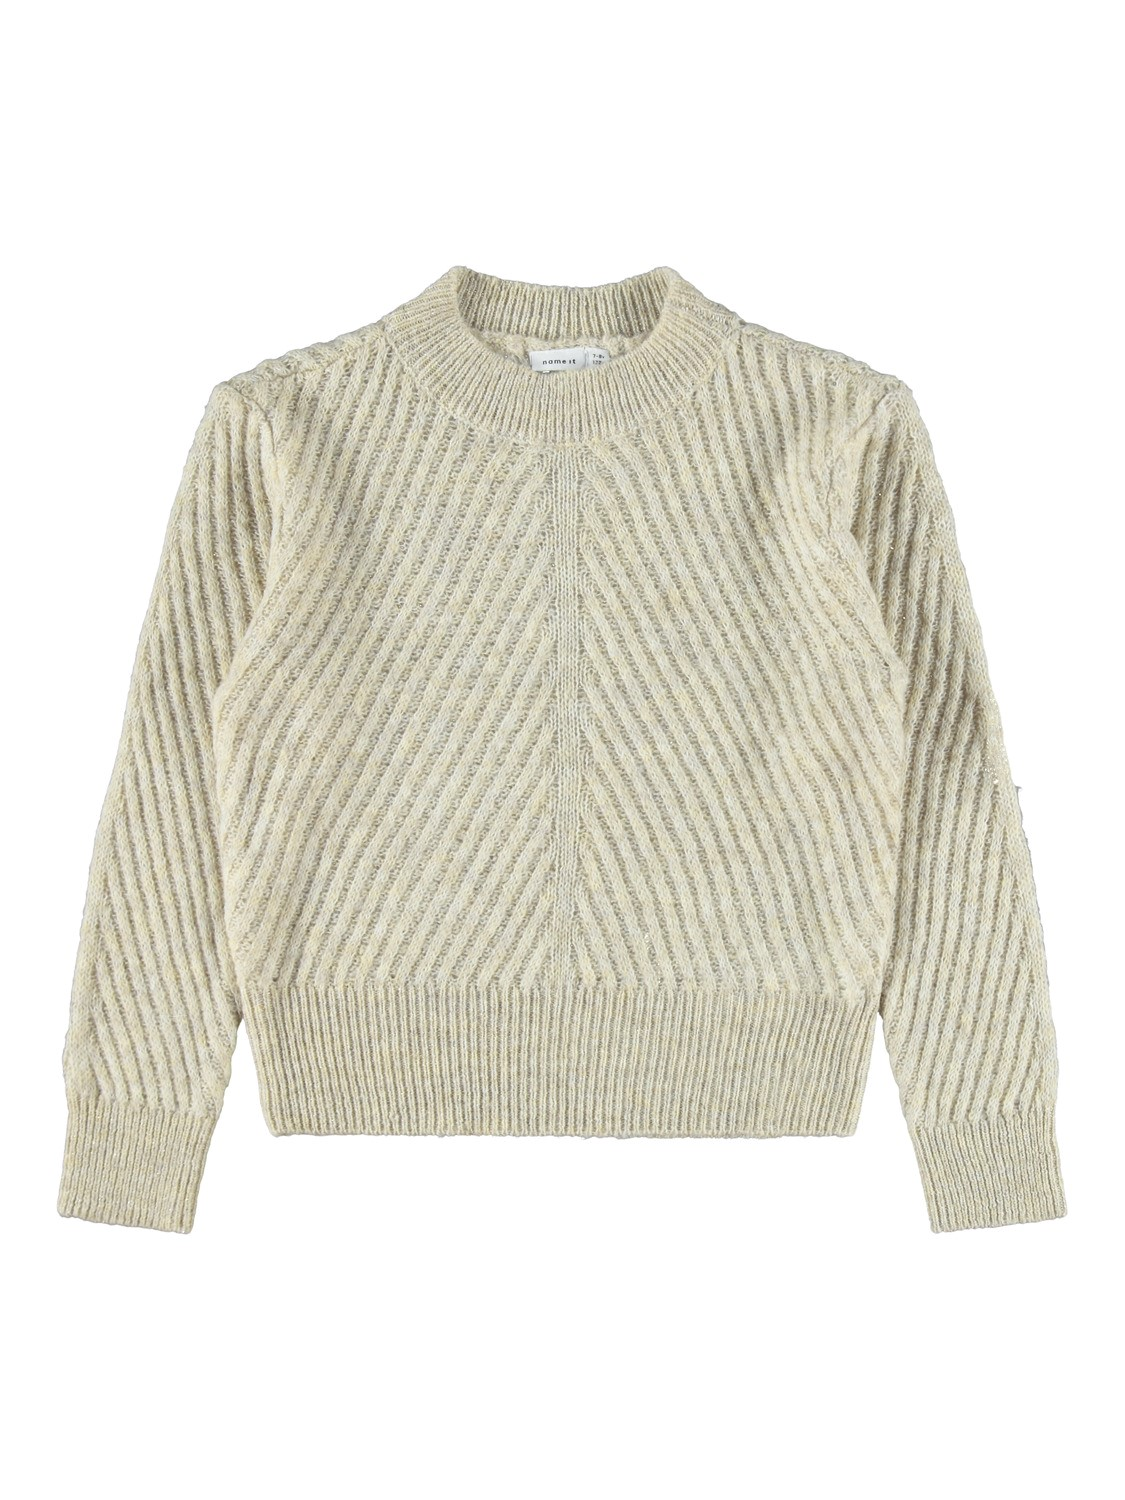 Tuttie Knit - Oatmel